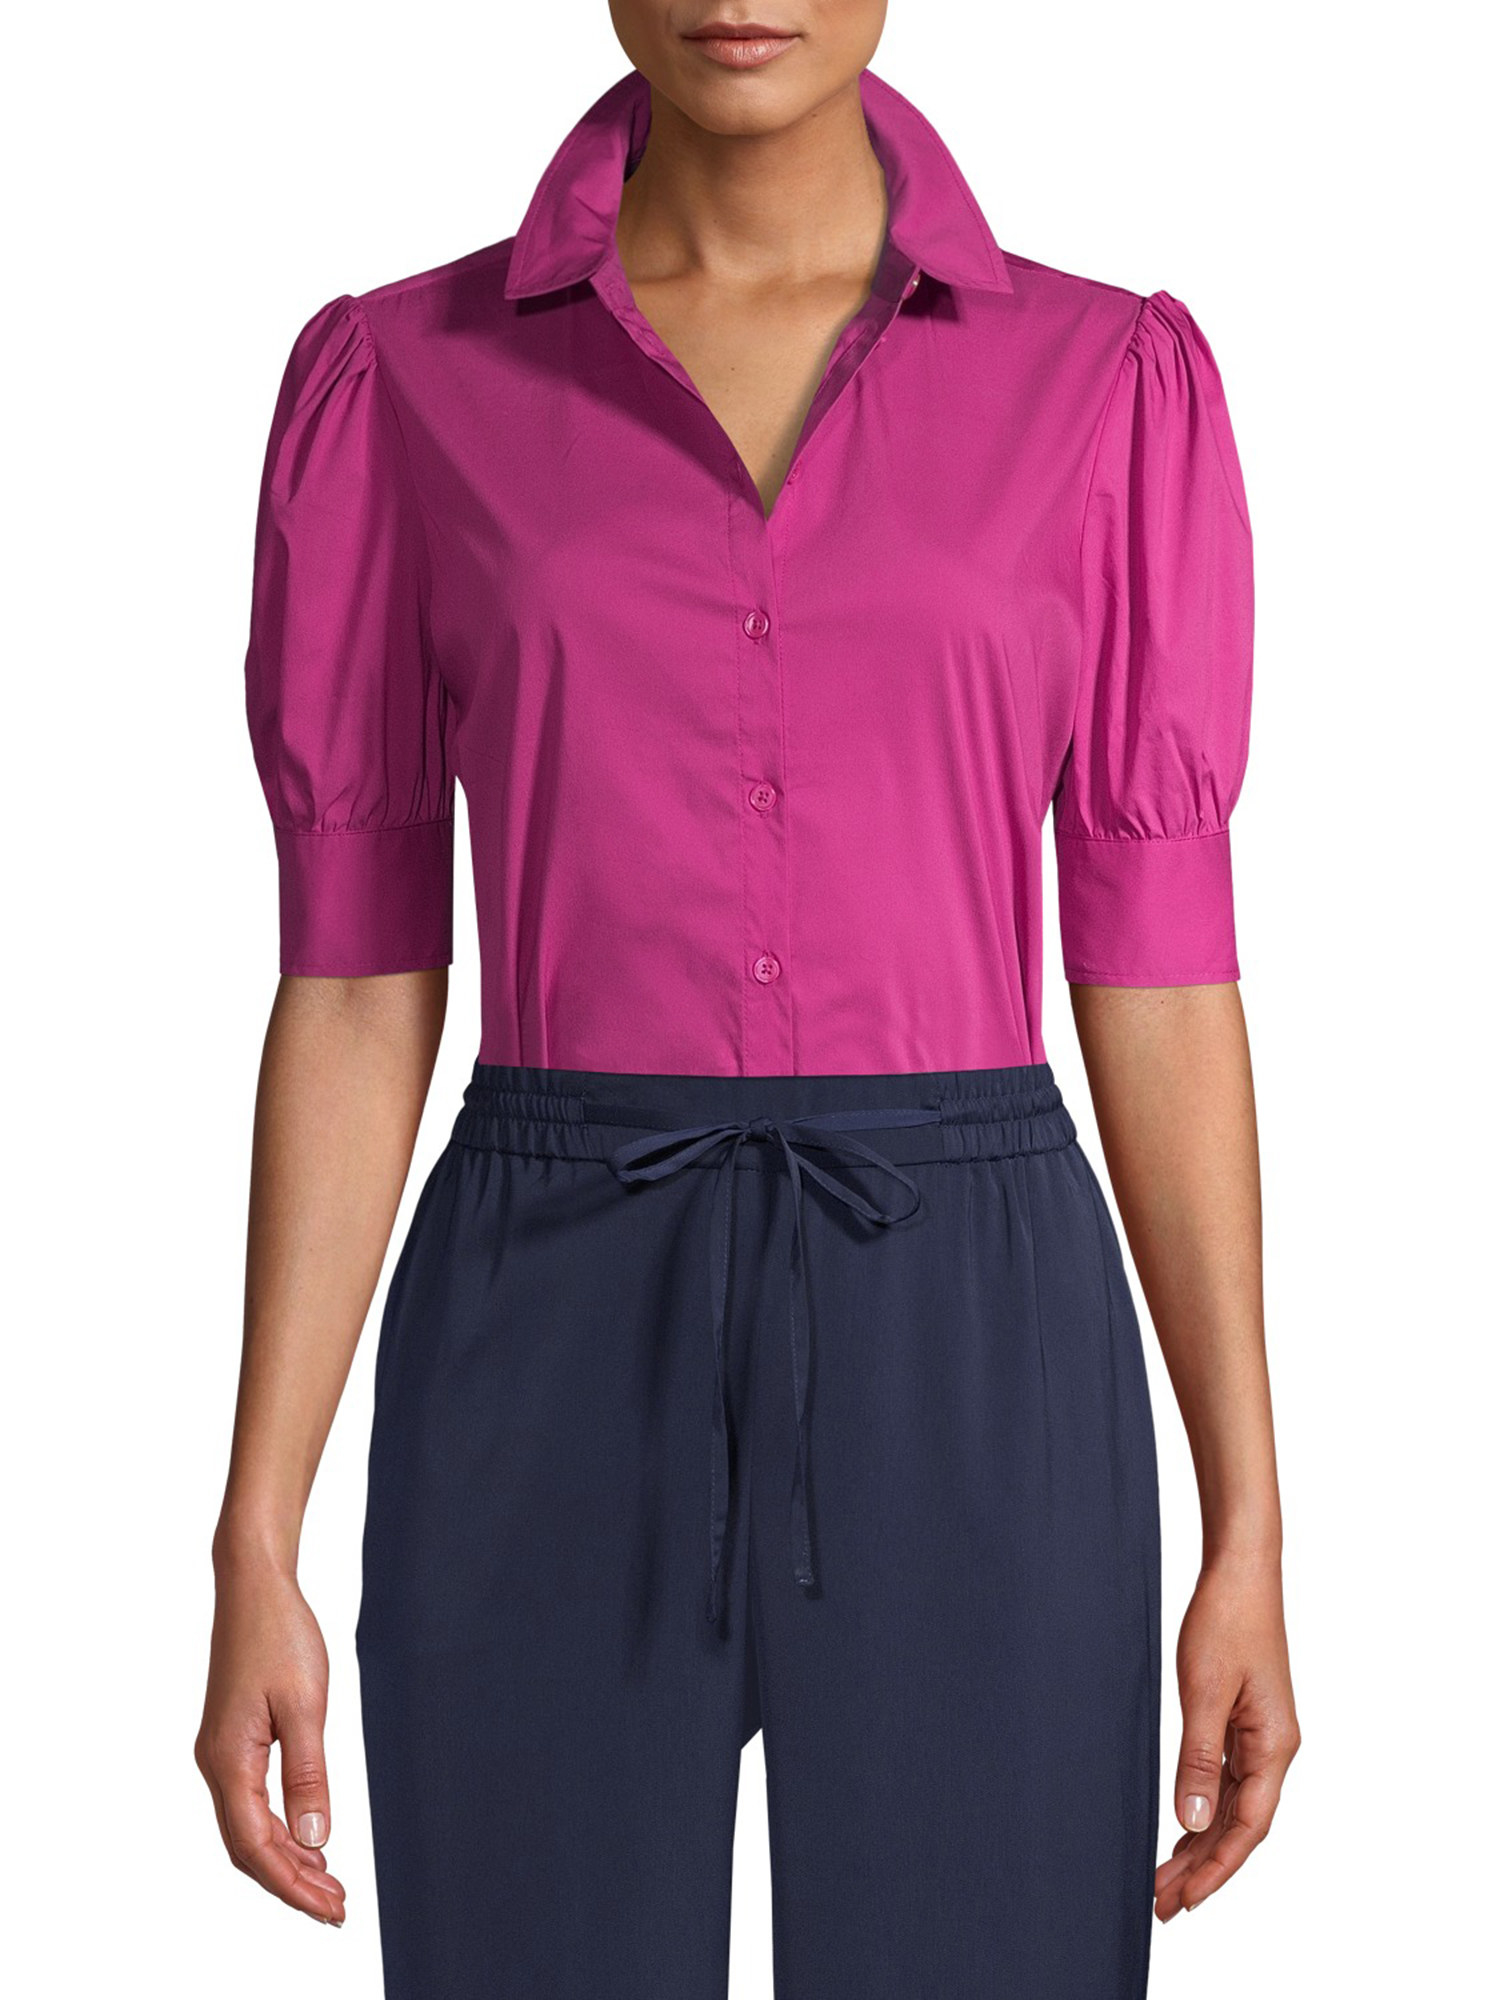 a pink button down with puffy sleeves